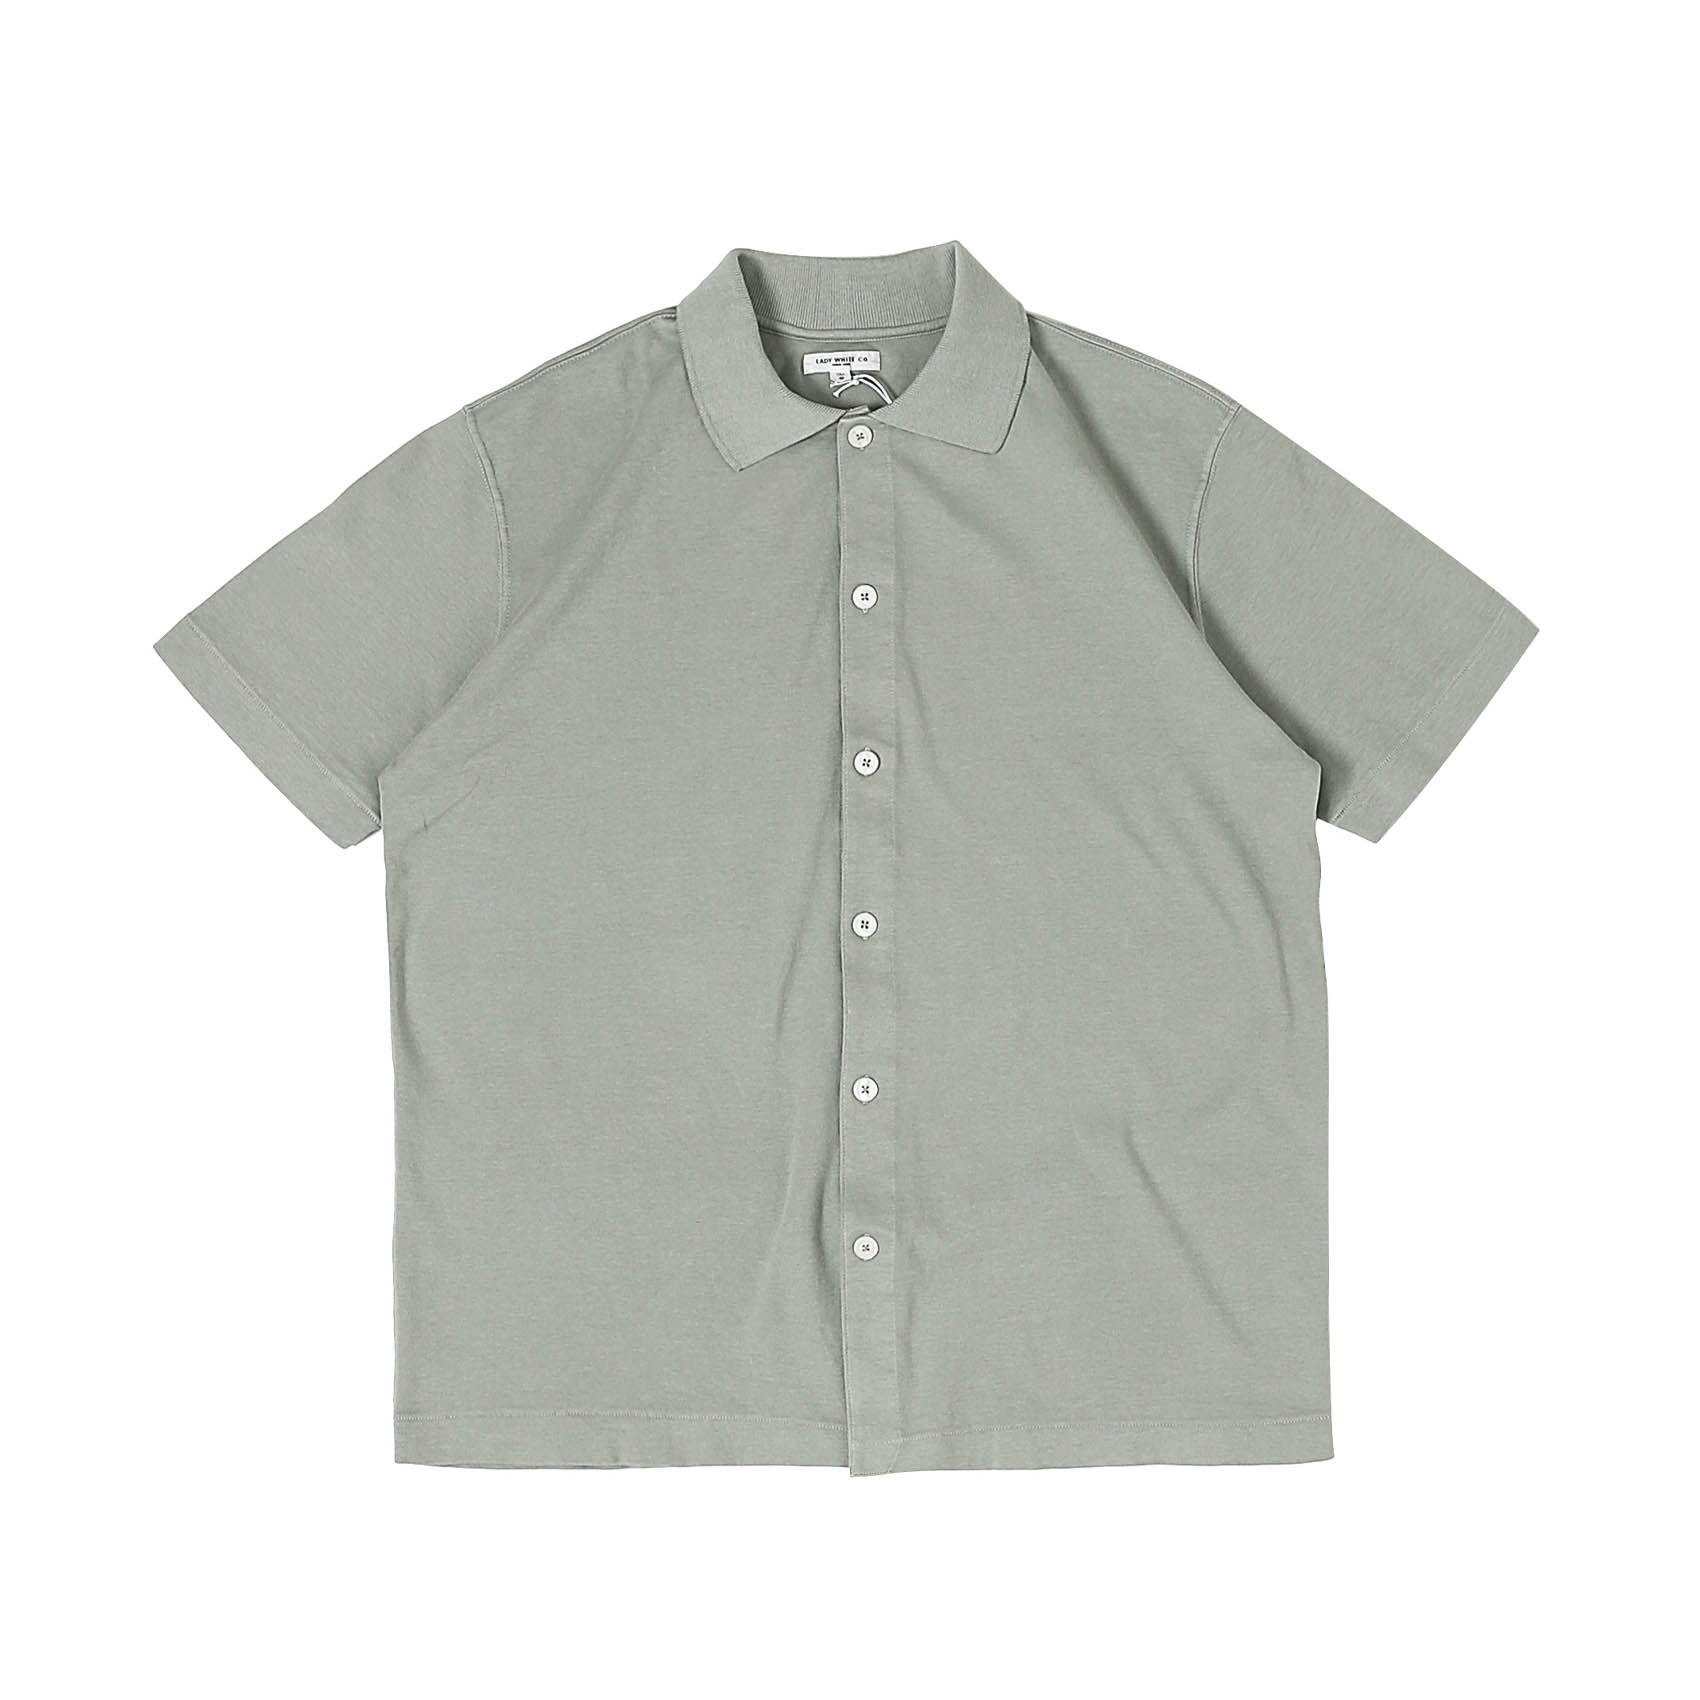 S/S PLACKET POLO - STEEL GREY